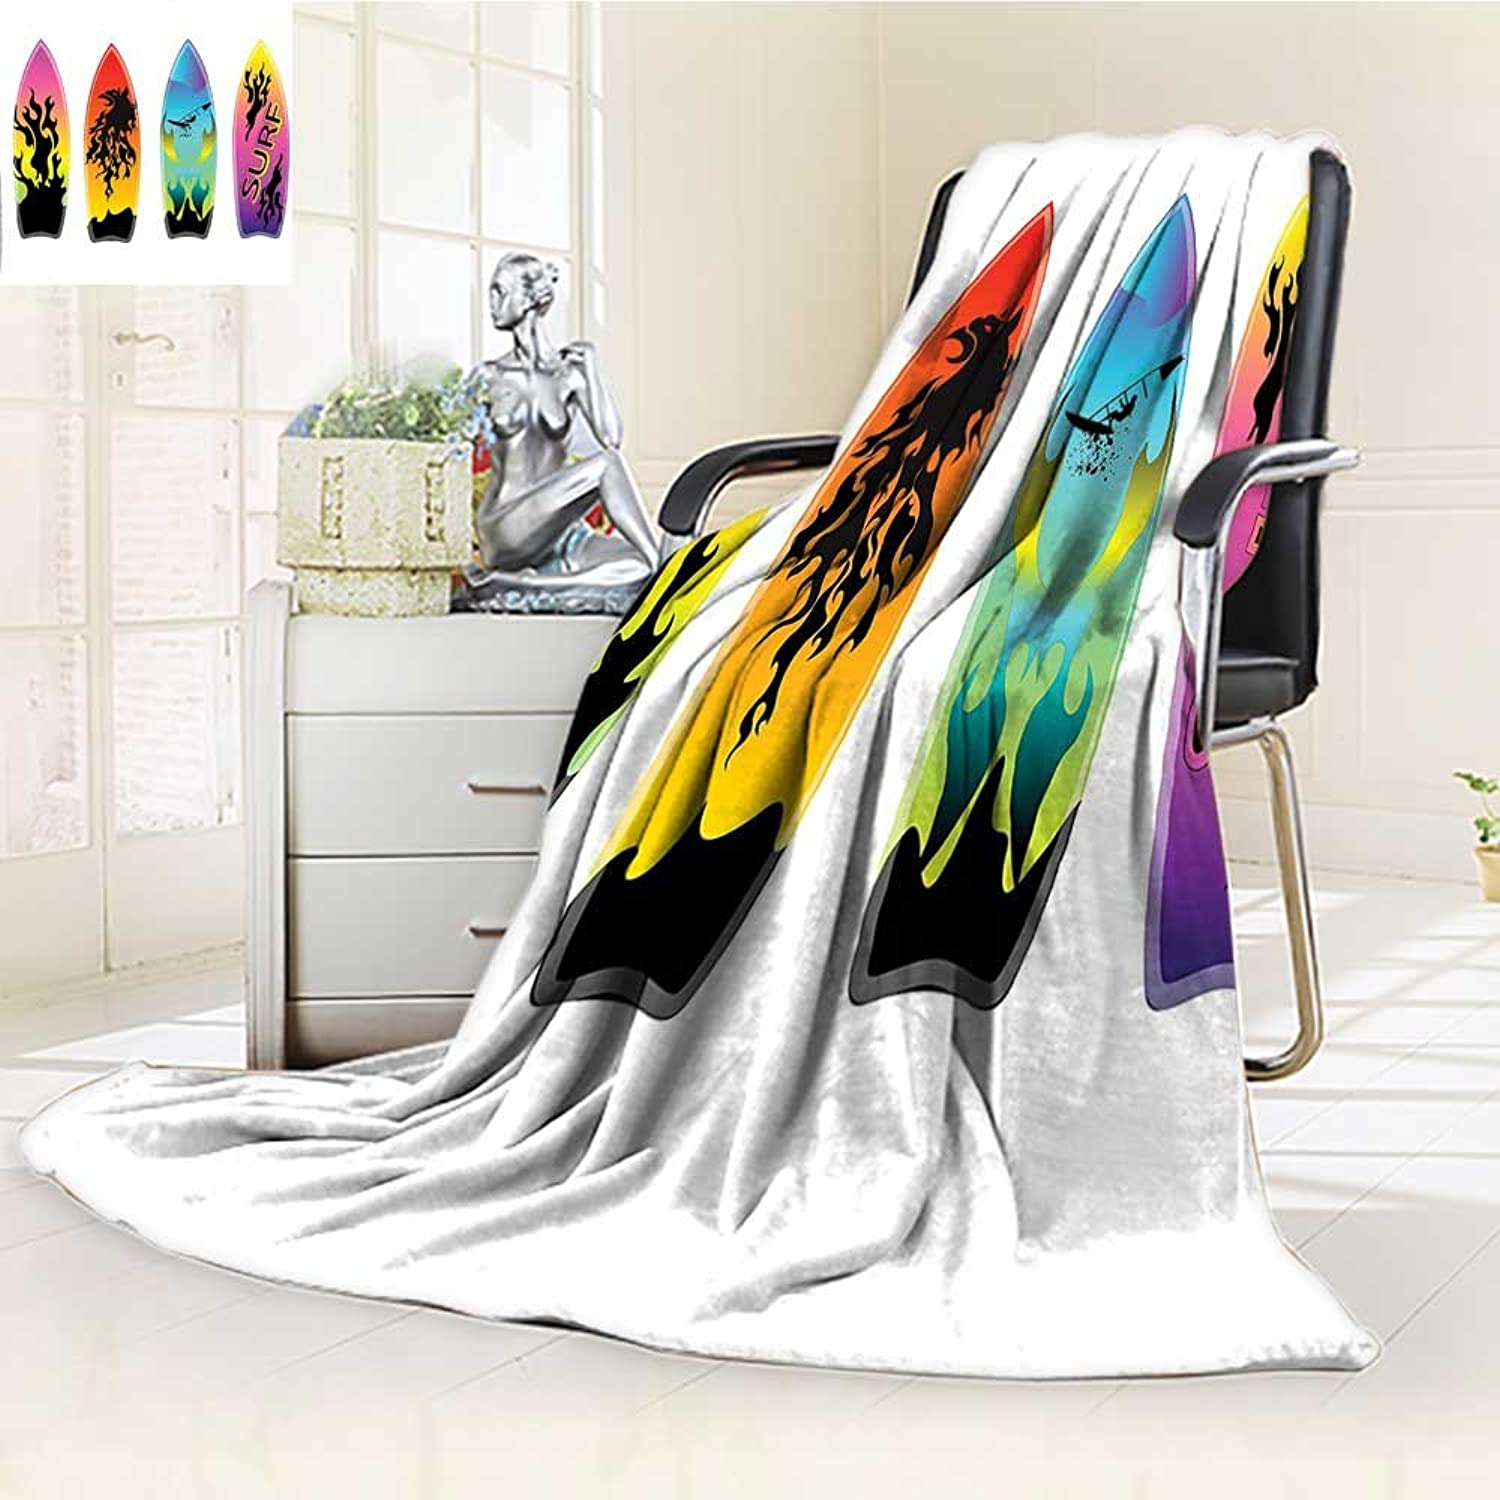 YOYI-HOME Digital Printing Duplex Printed Blanket Windsurf Youth Culture Freedom California Ocean Sand Time Image Purple Black Summer Quilt Comforter  W59 x H39.5